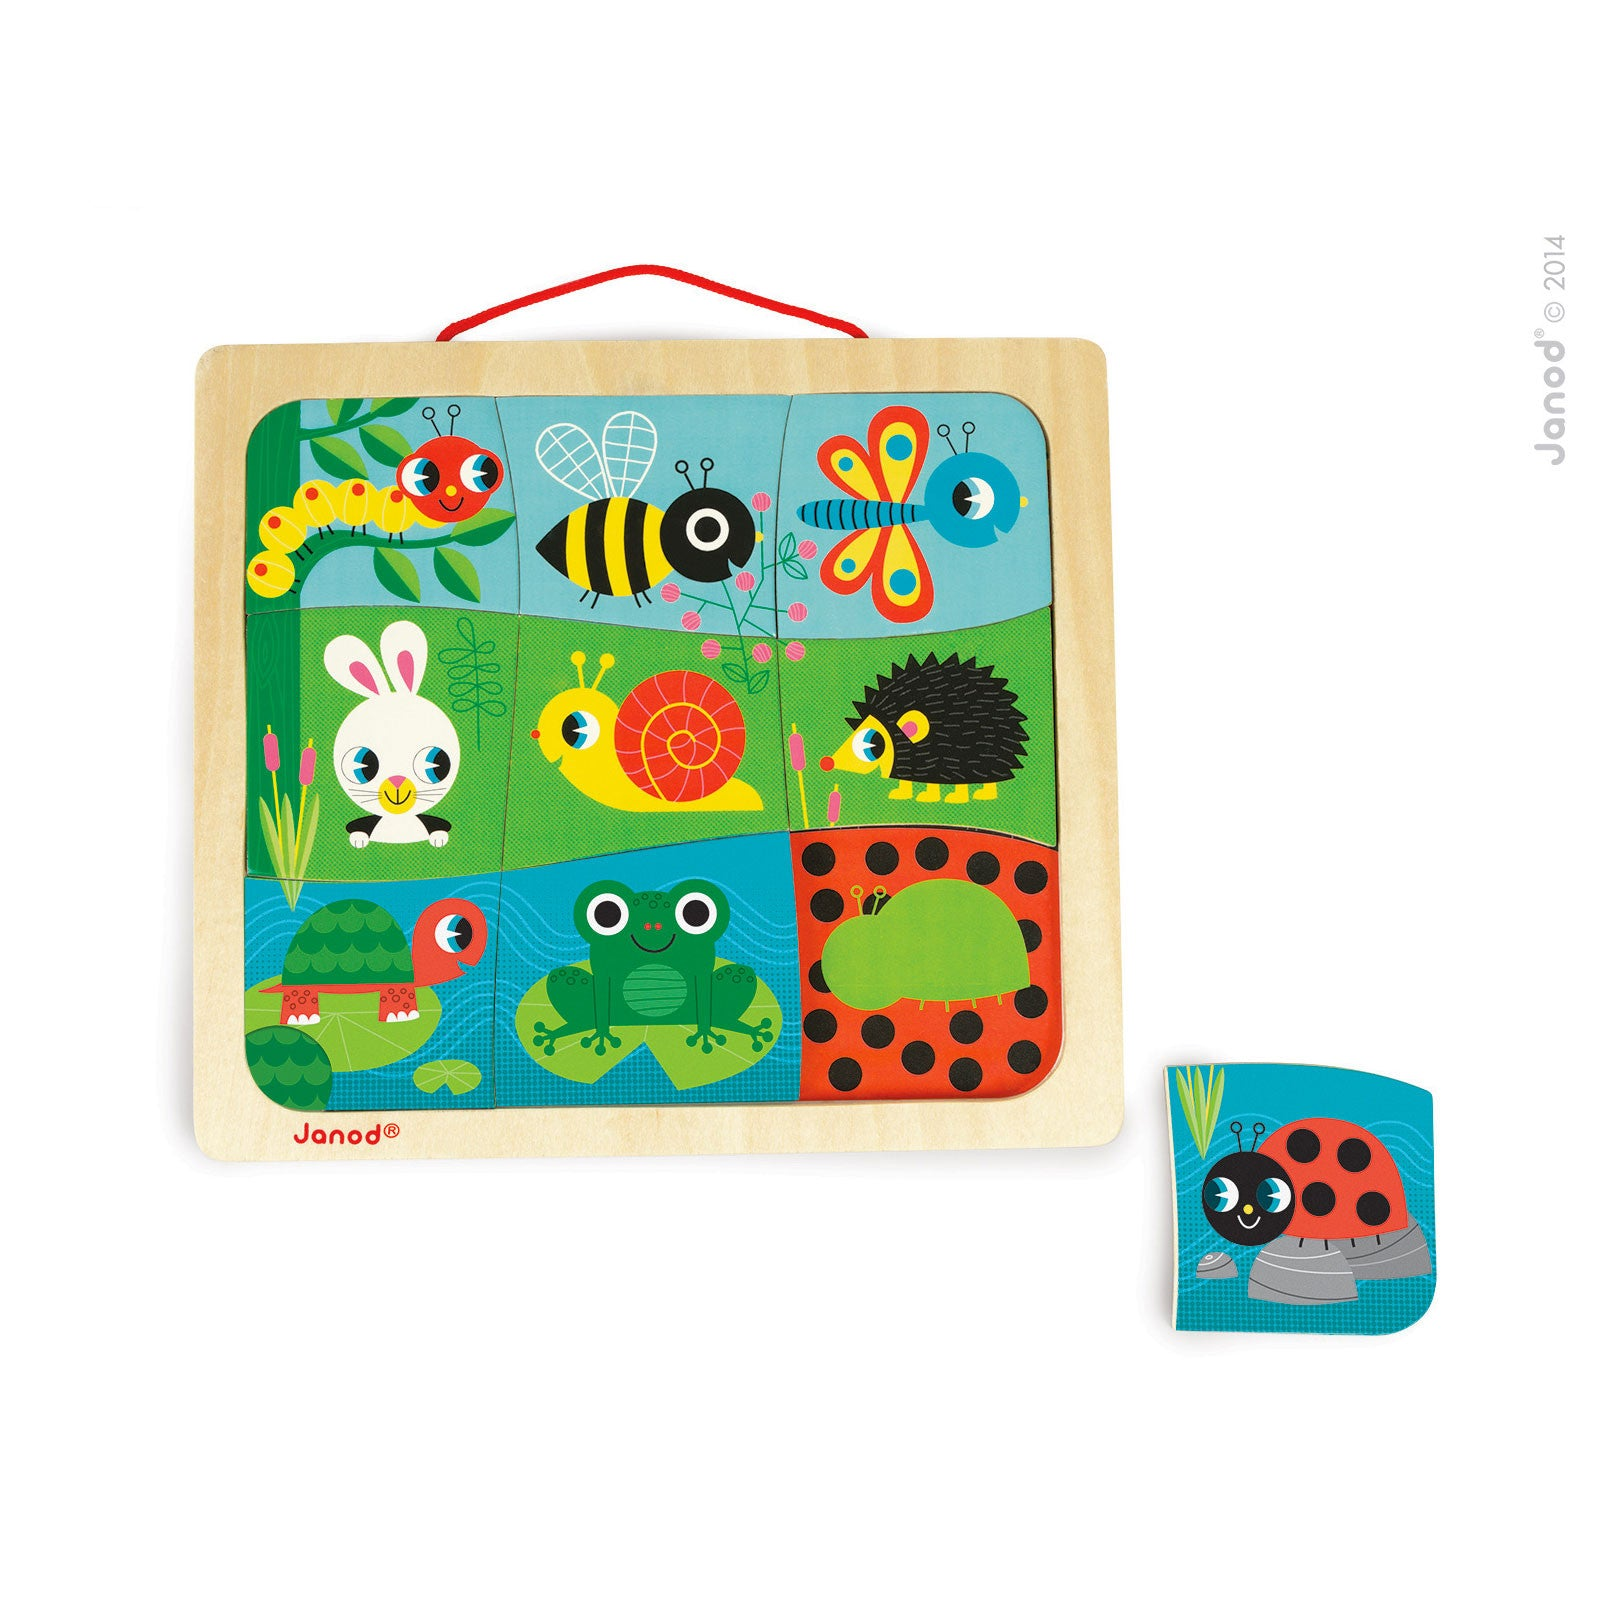 Janod Happy Garden Magnetic Puzzle Janod Puzzles at Little Earth Nest Eco Shop